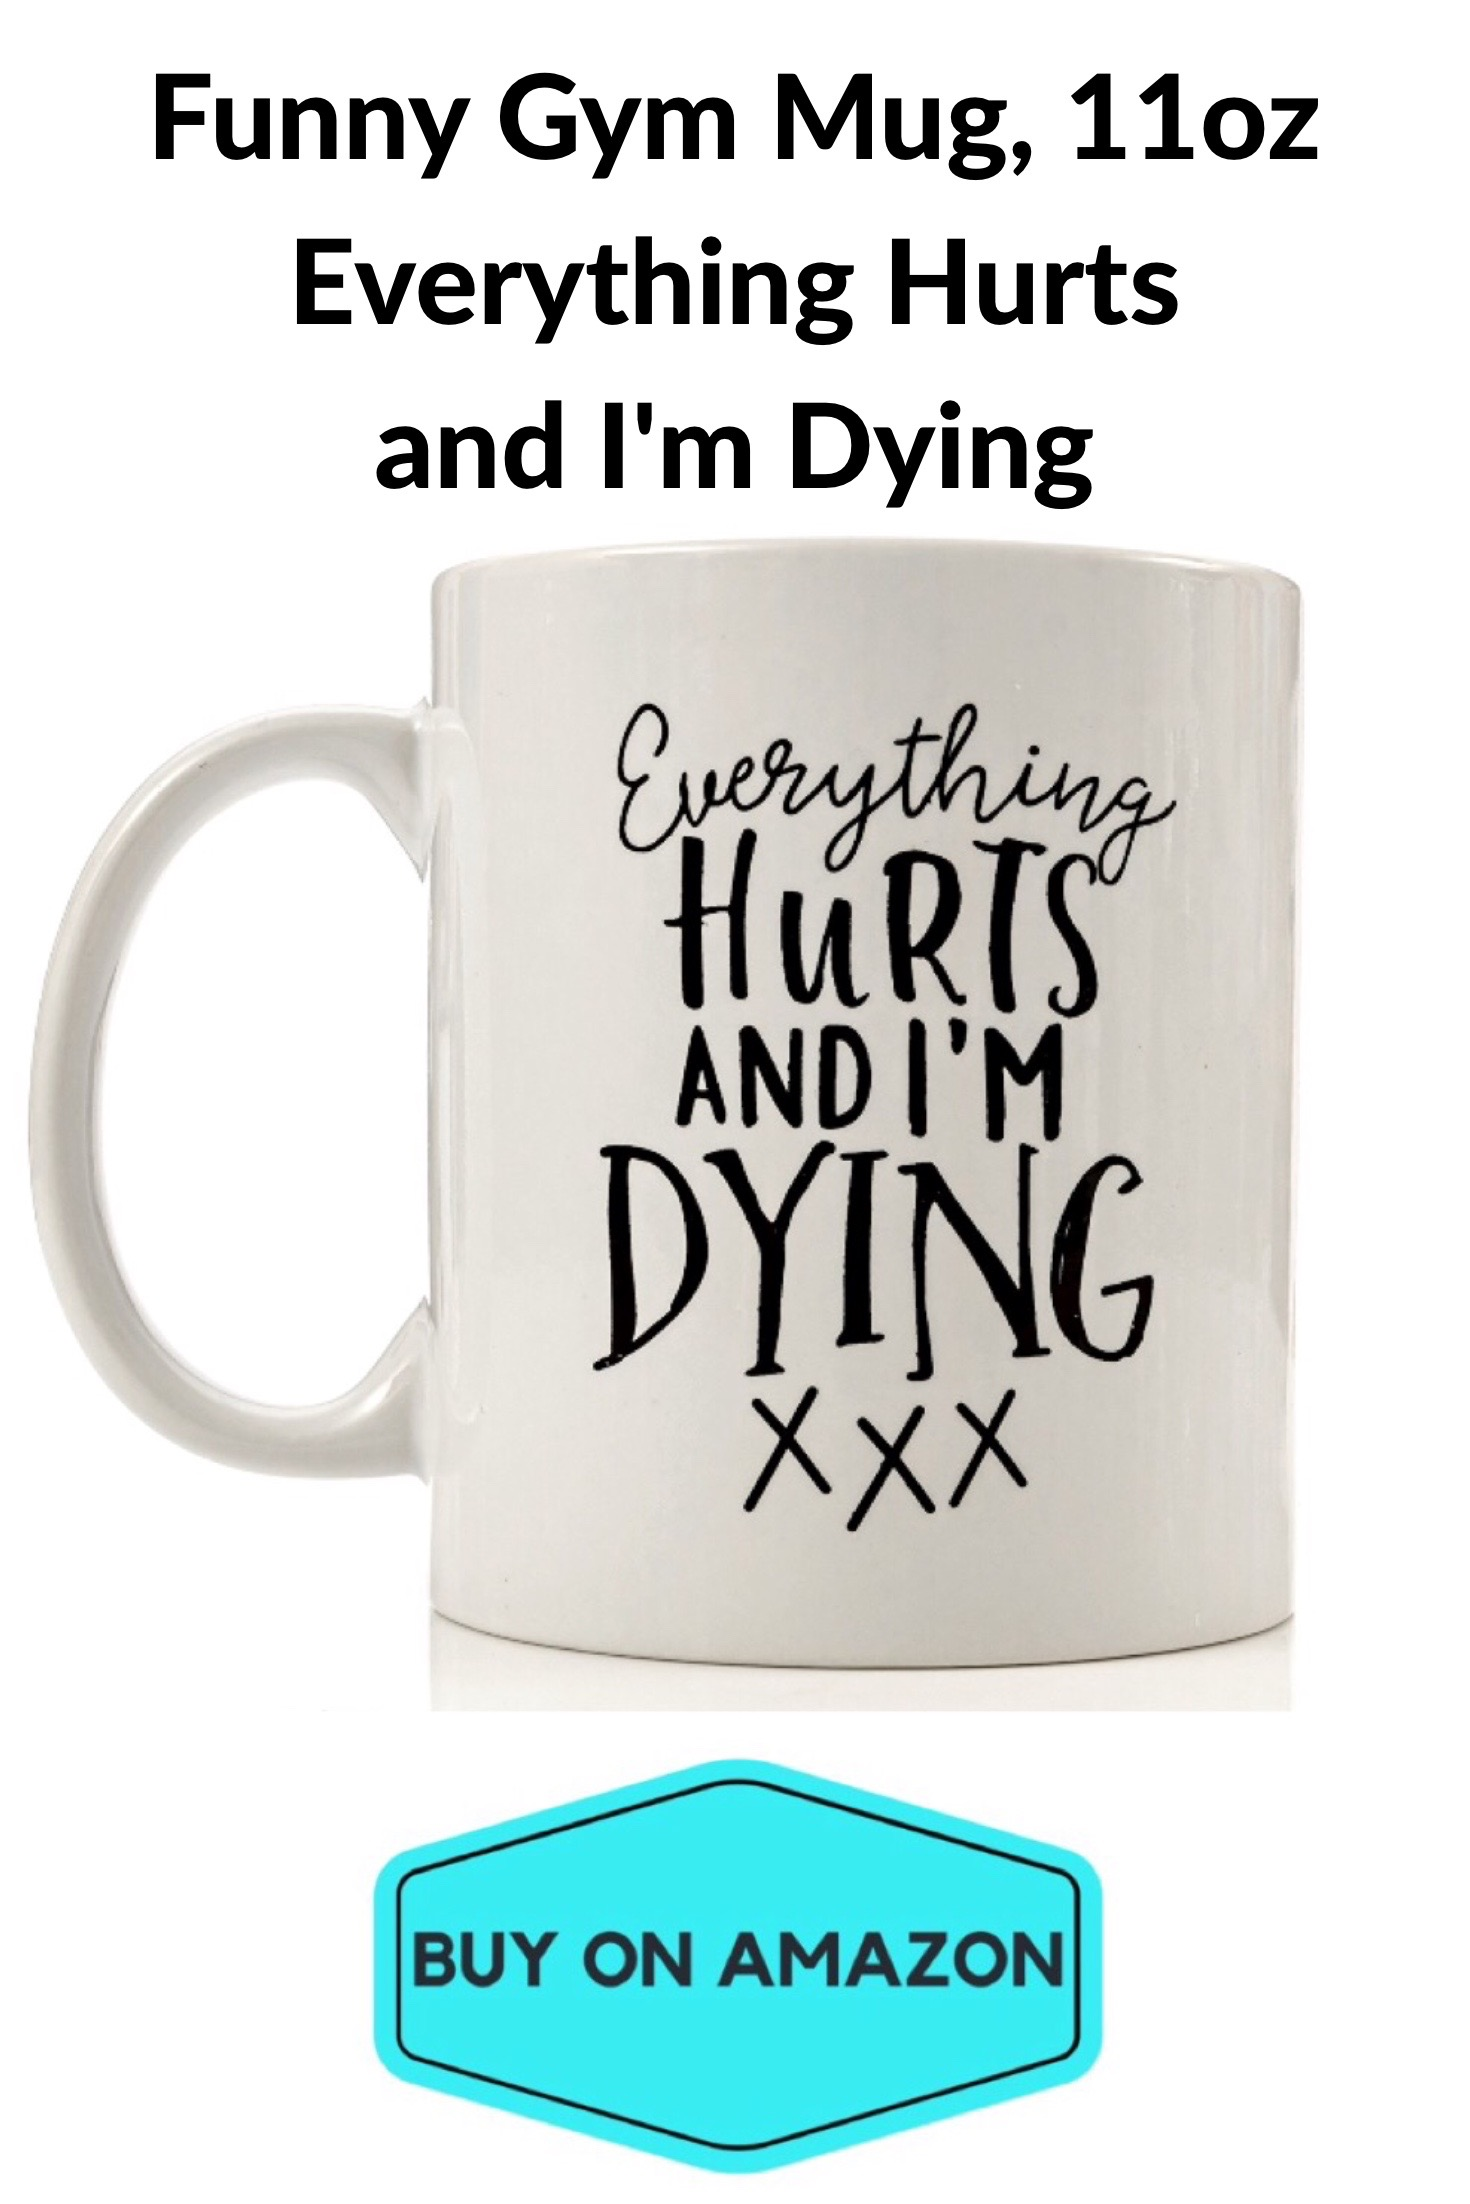 """Everything Hurts and I'm Dying' Funny Gym Mug, 11oz"